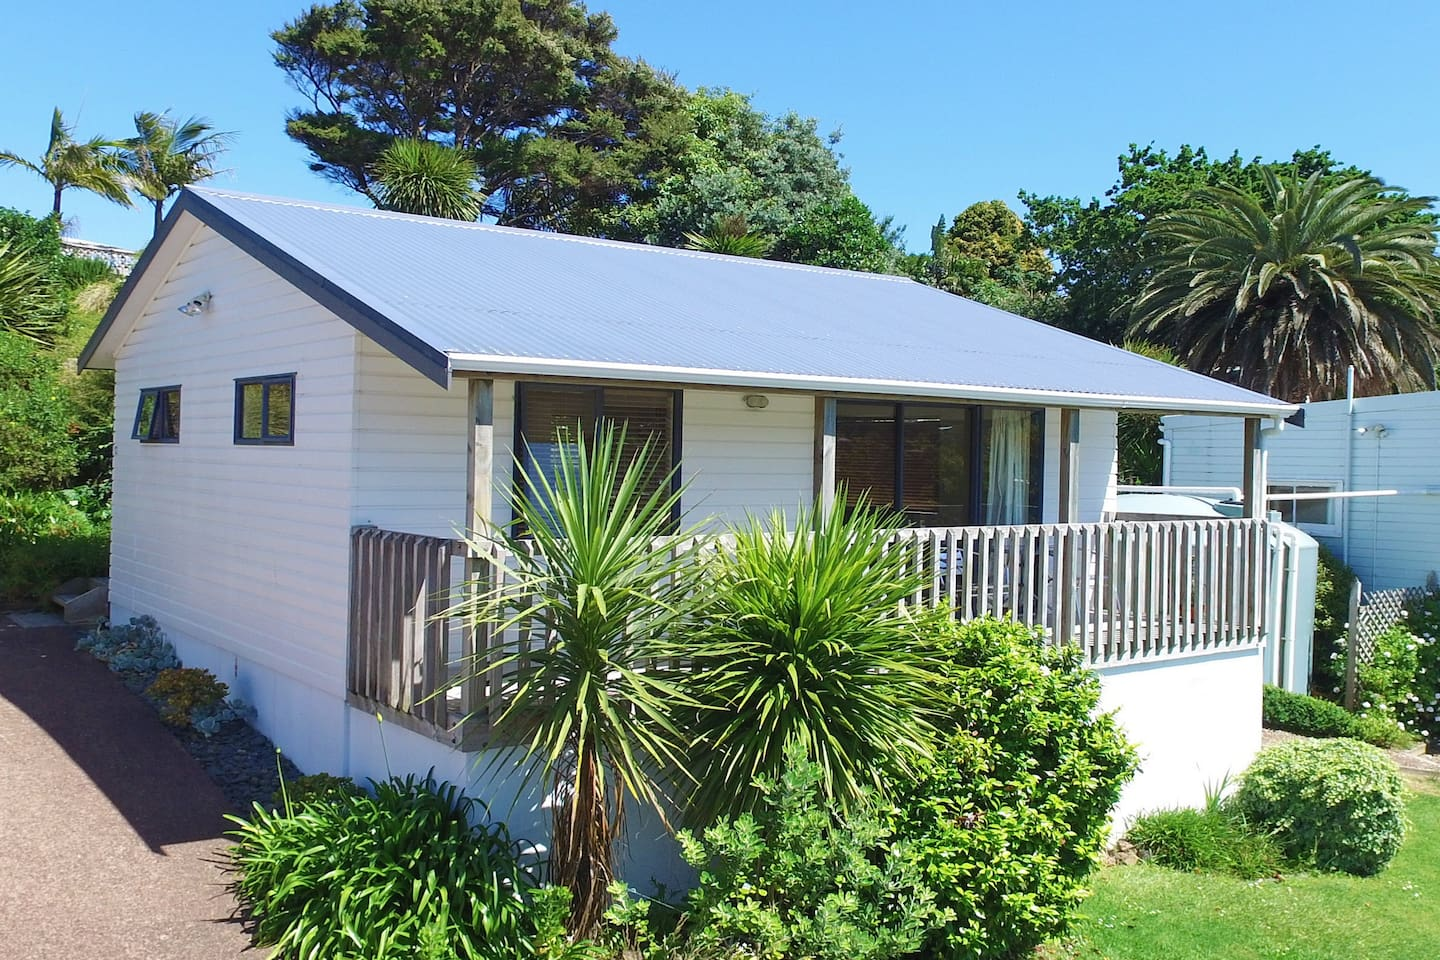 Sunny self-contained cottage, with kitchenette and own bathroom.